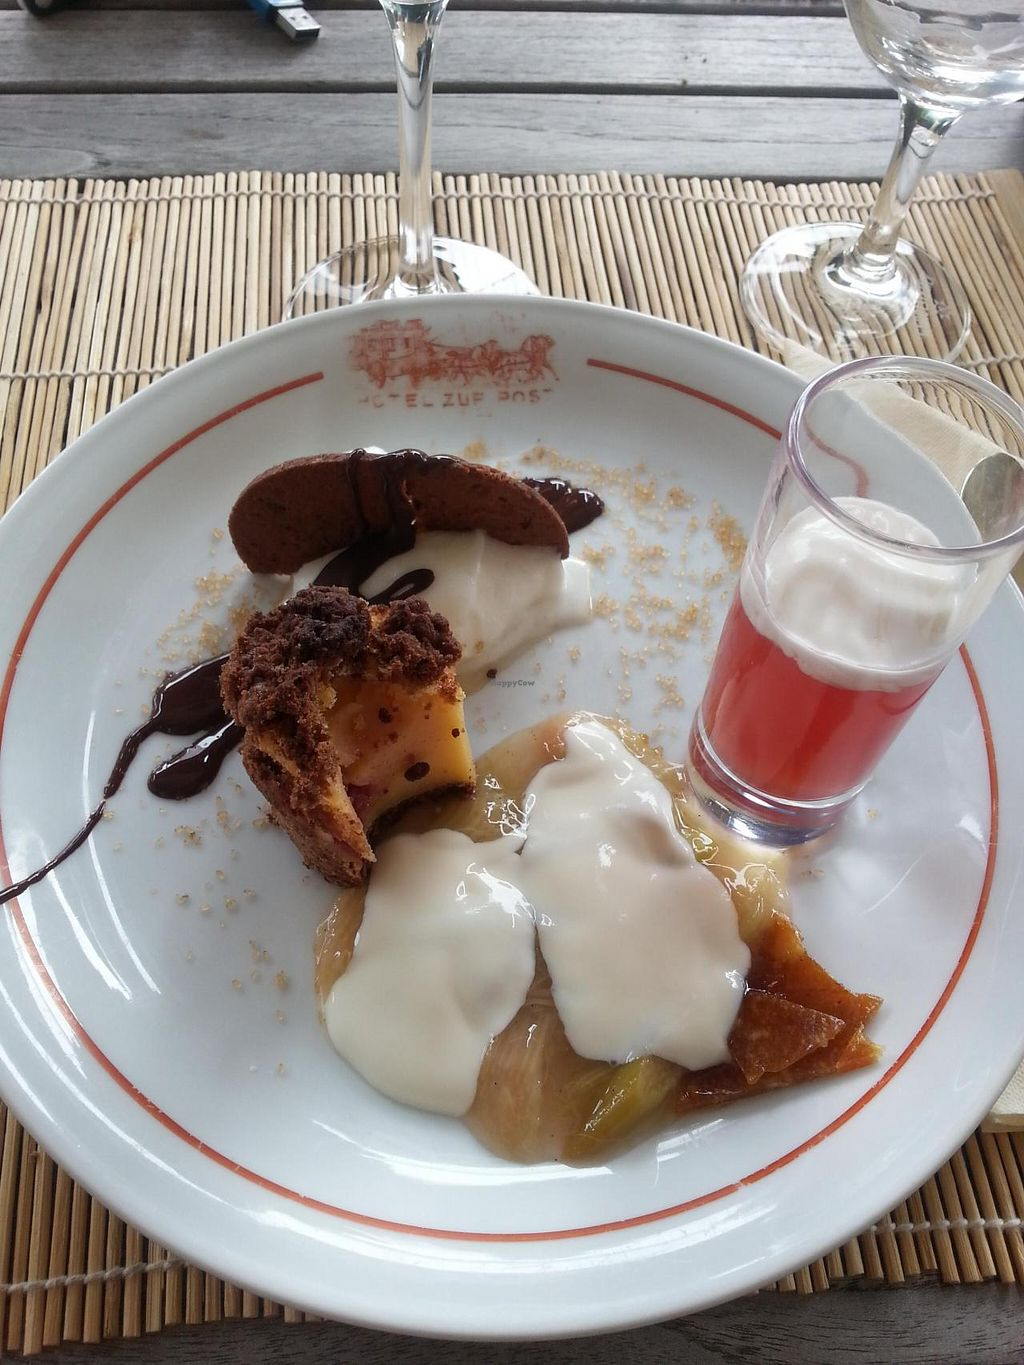 """Photo of Die Weinstube Nachhaltig Geniessen  by <a href=""""/members/profile/coi"""">coi</a> <br/>Dessert <br/> August 26, 2014  - <a href='/contact/abuse/image/38053/78289'>Report</a>"""